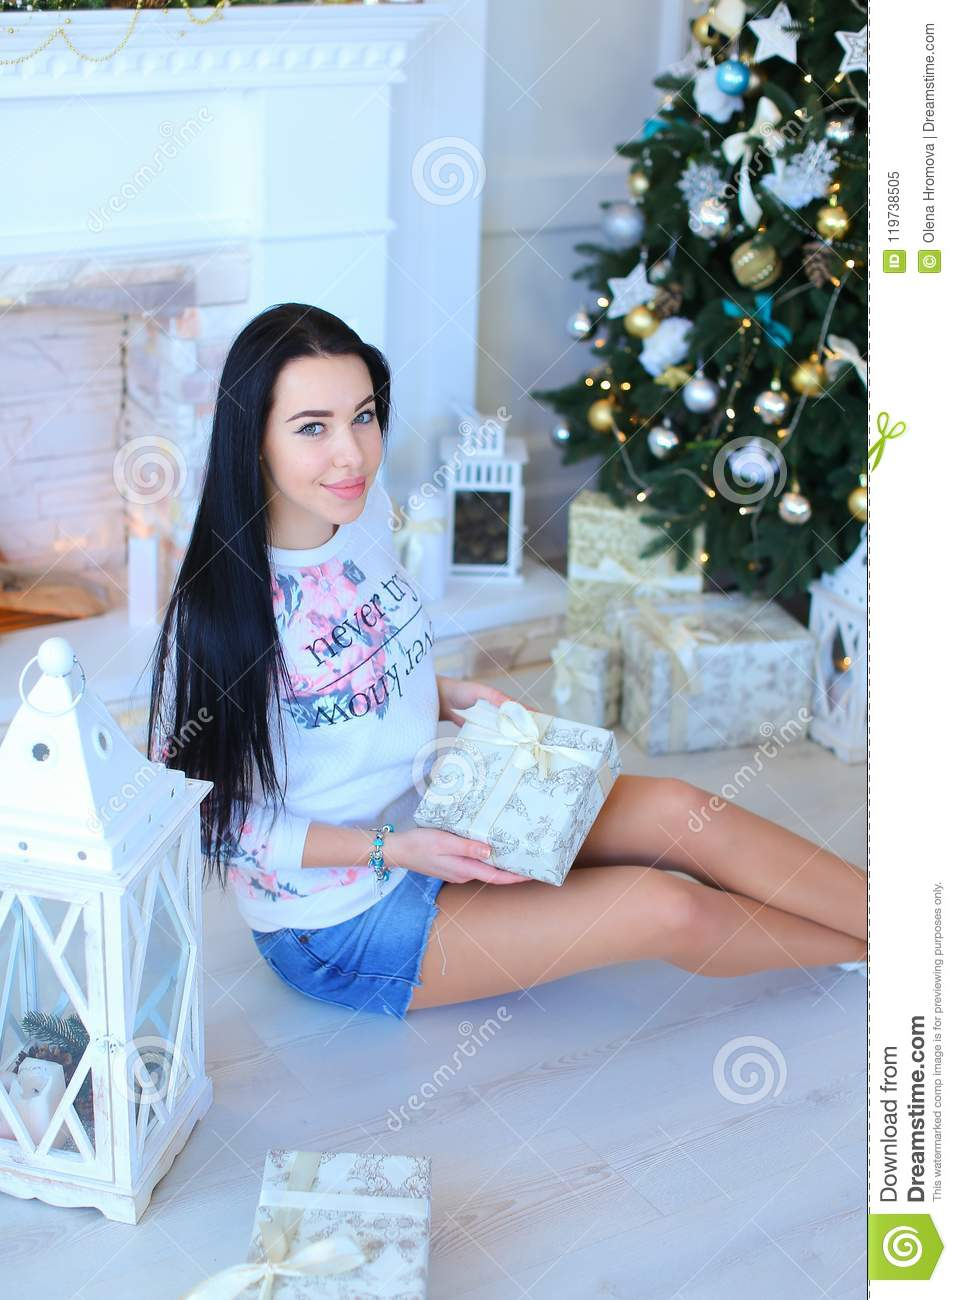 Young woman sitting near Christmass tree and keeping present.